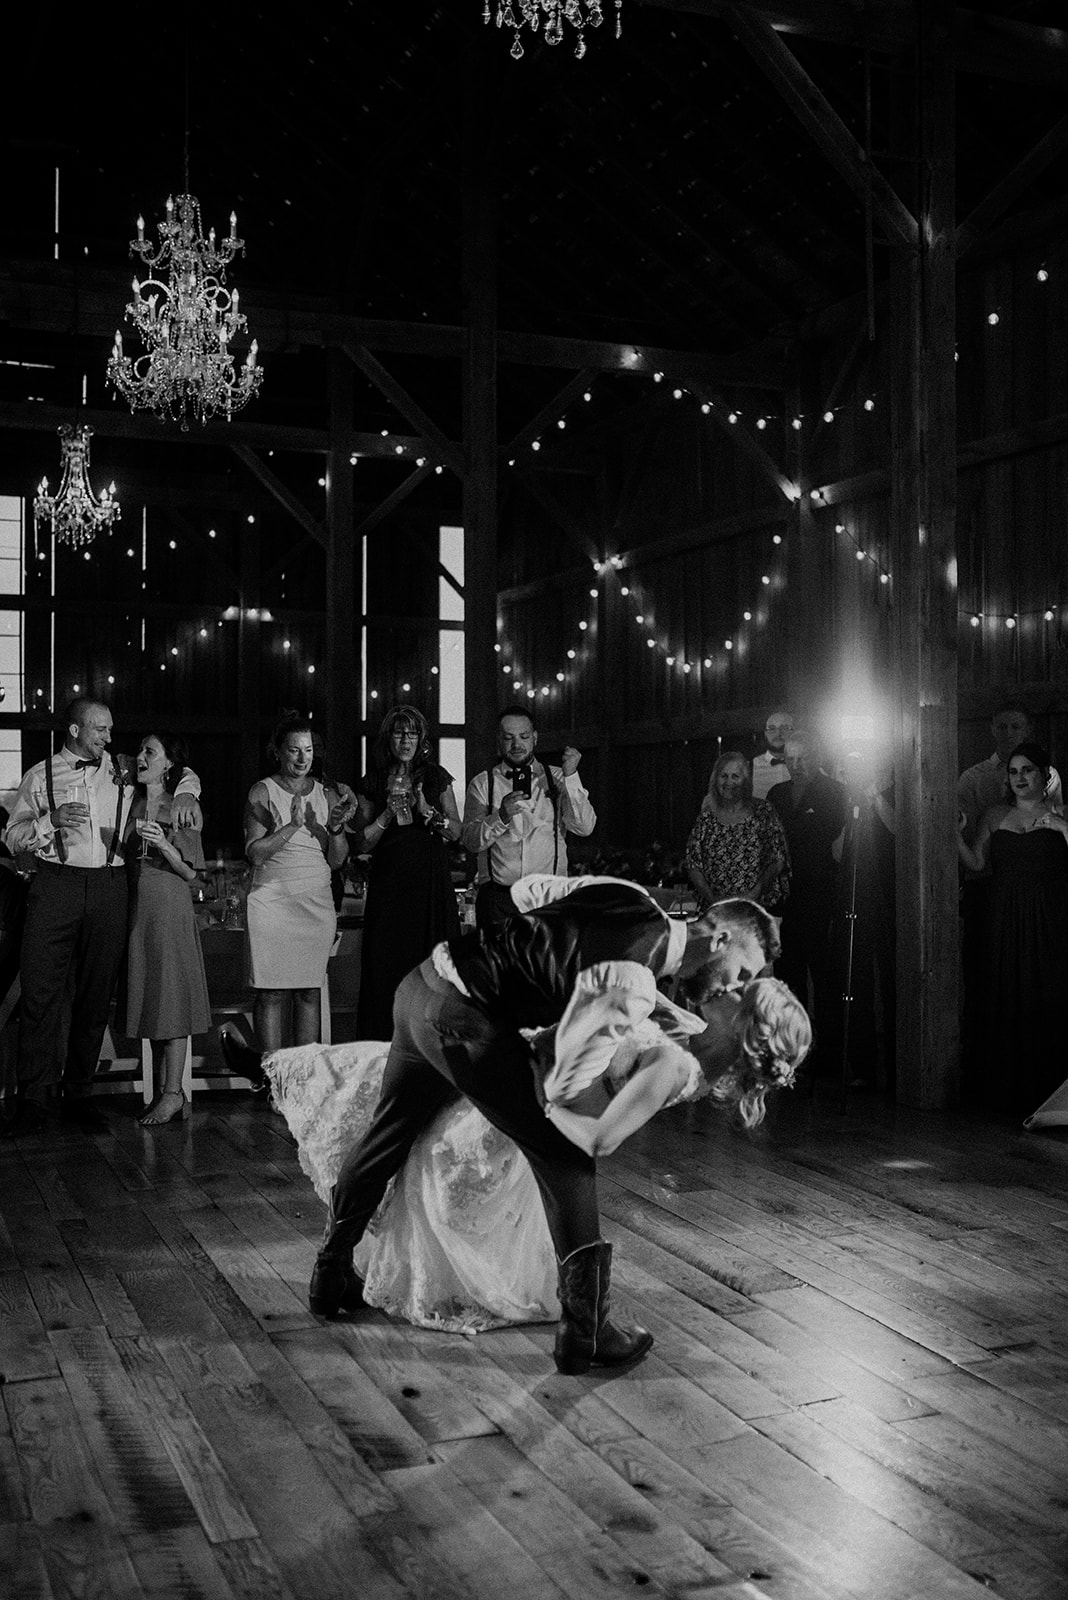 overthevineswisconsinwedding_1291.jpg